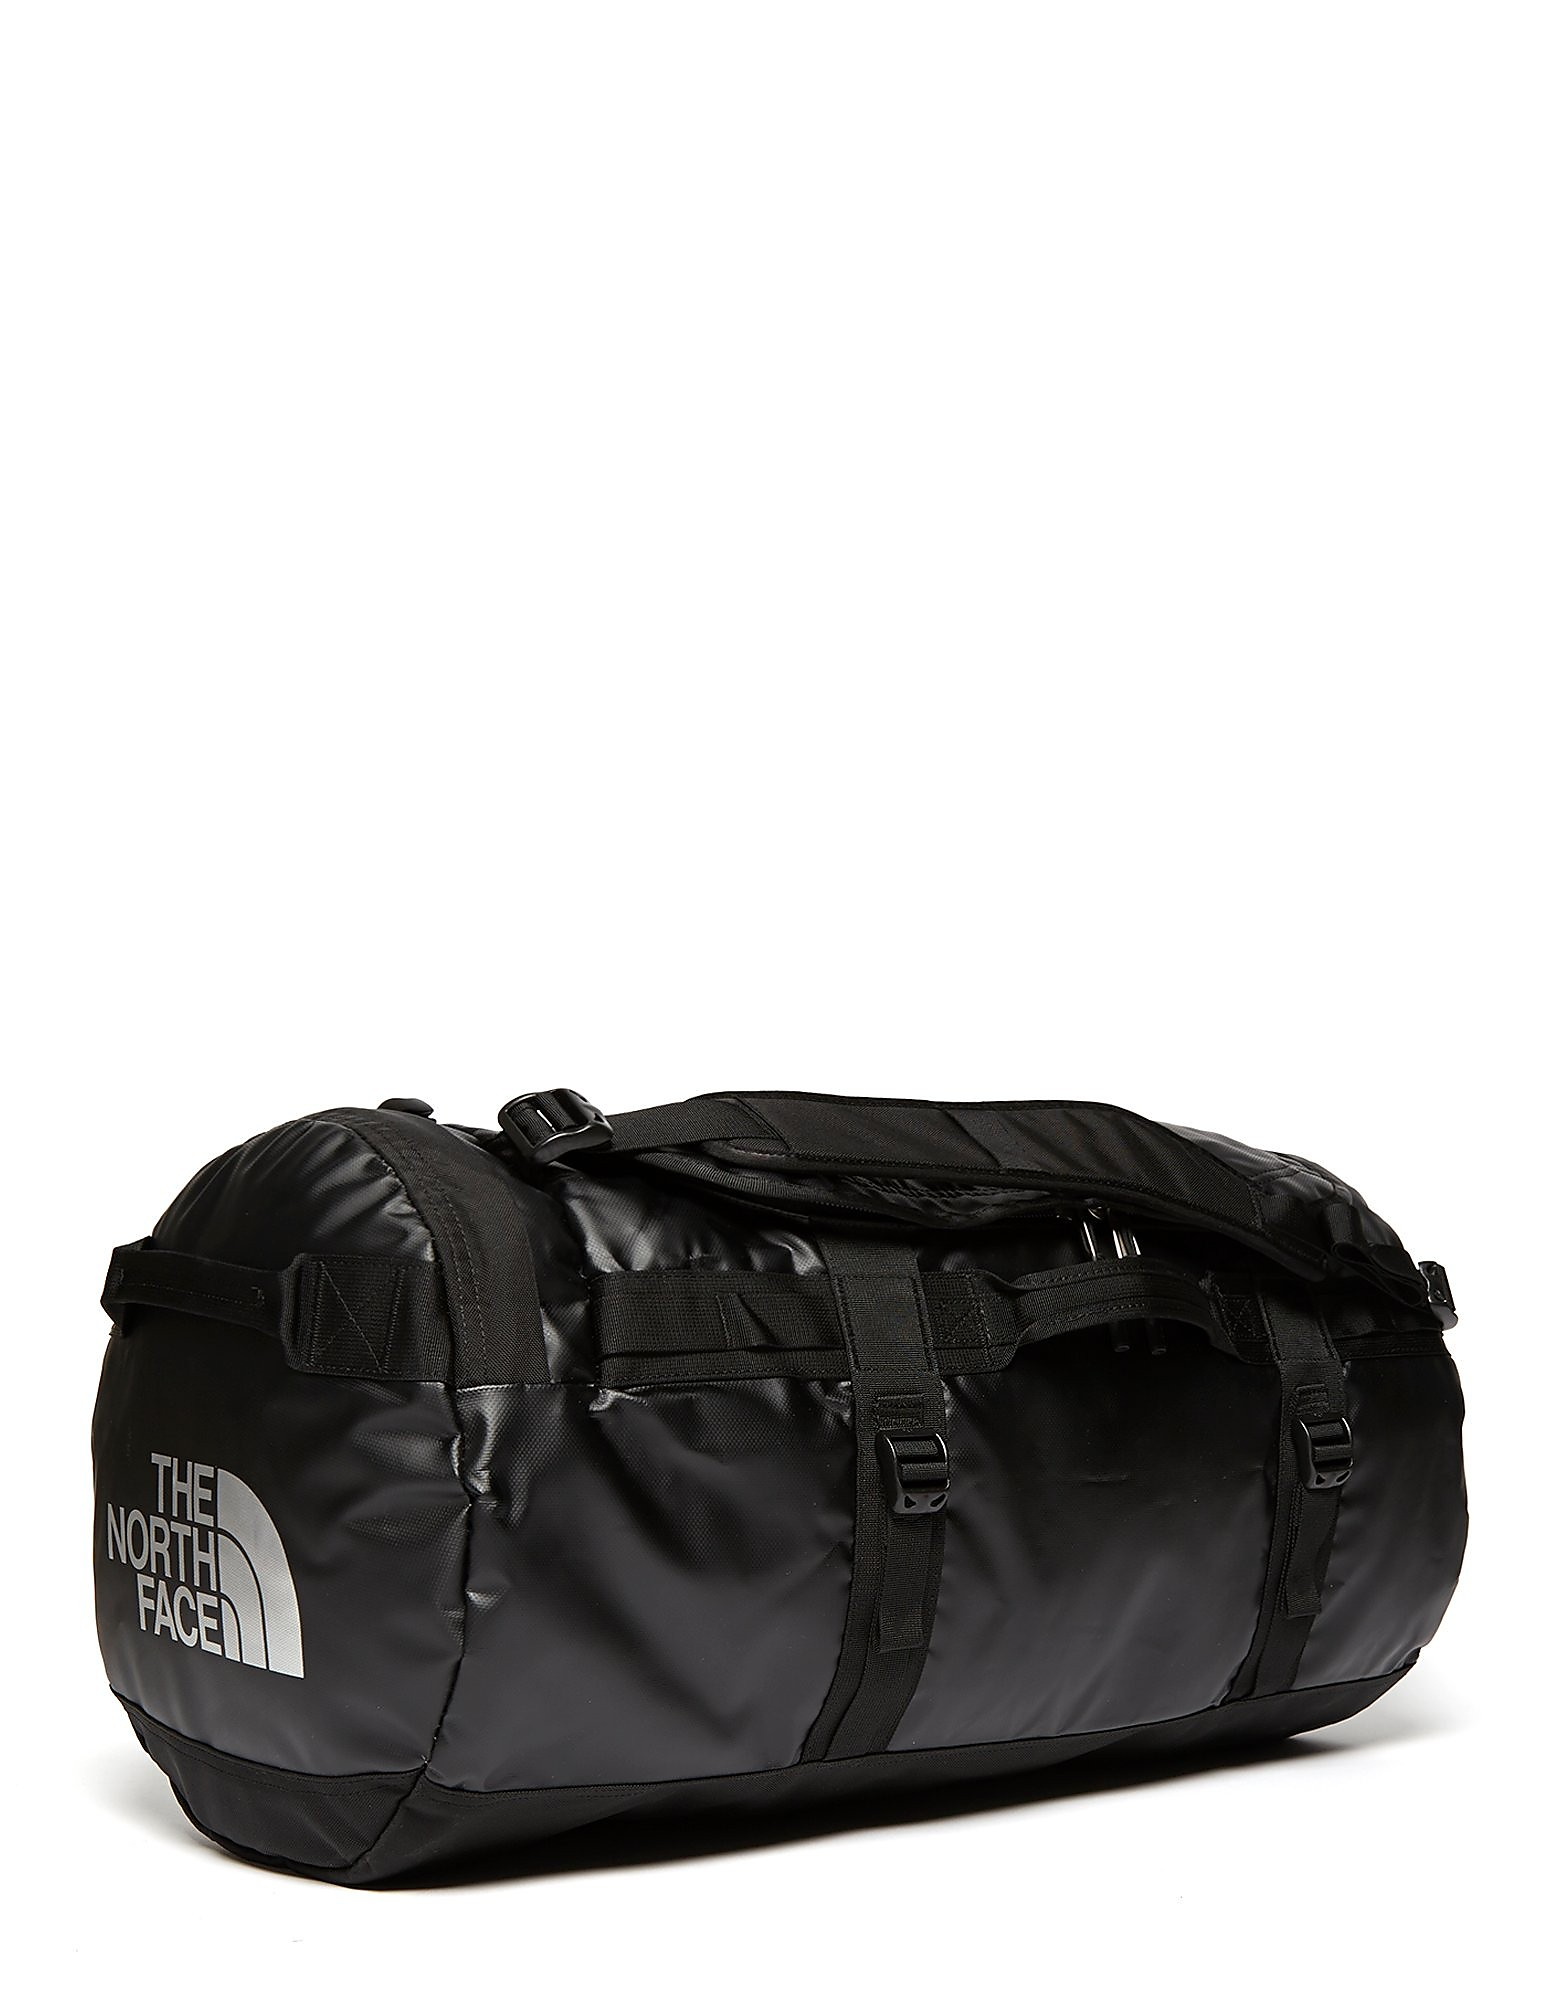 The North Face Medium Base Camp-sporttas